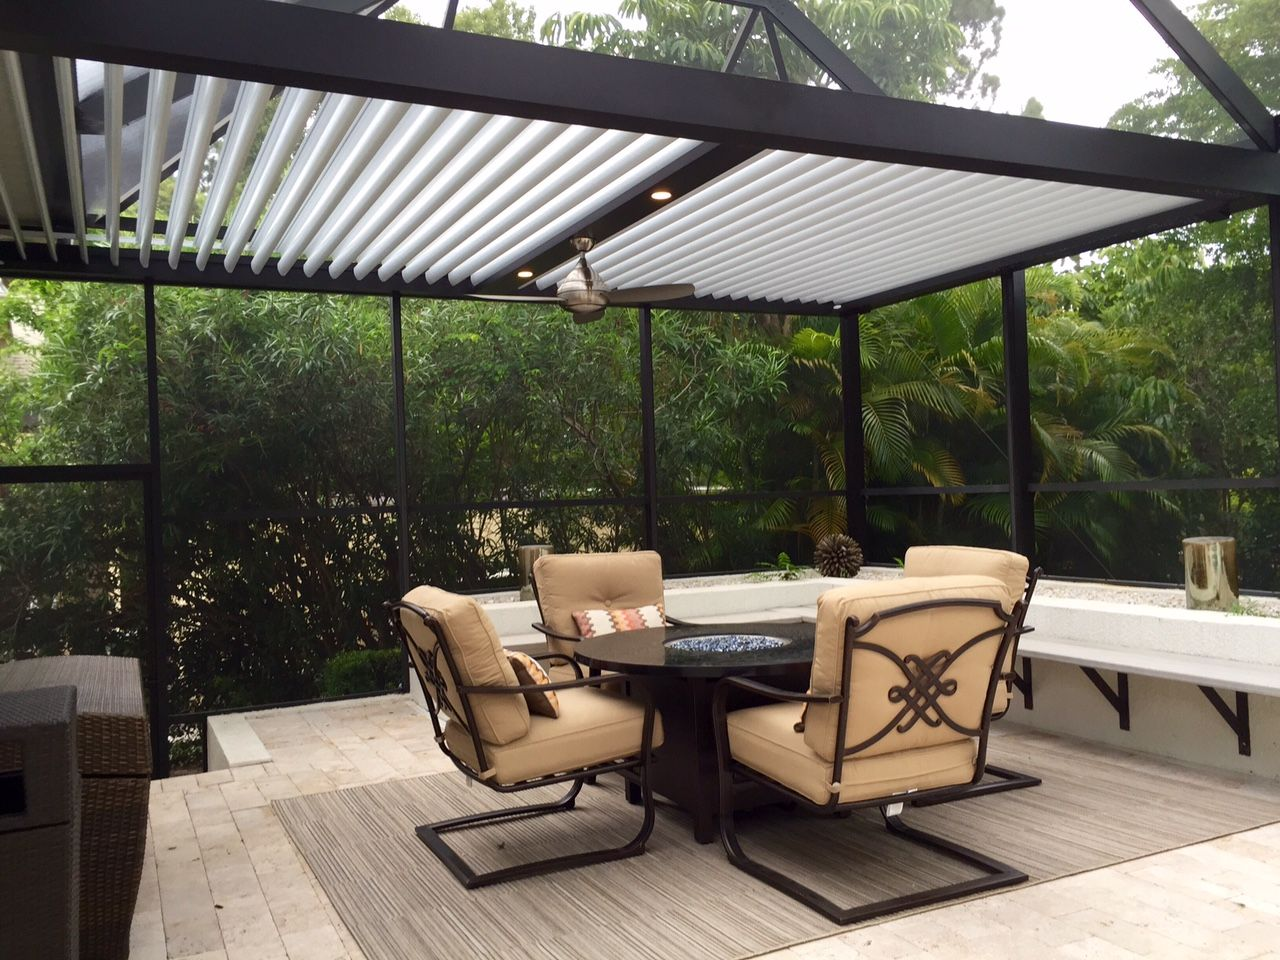 Adjustable Fixed Roof Systems Louvered Pergola Pergola With Roof Pergola Designs